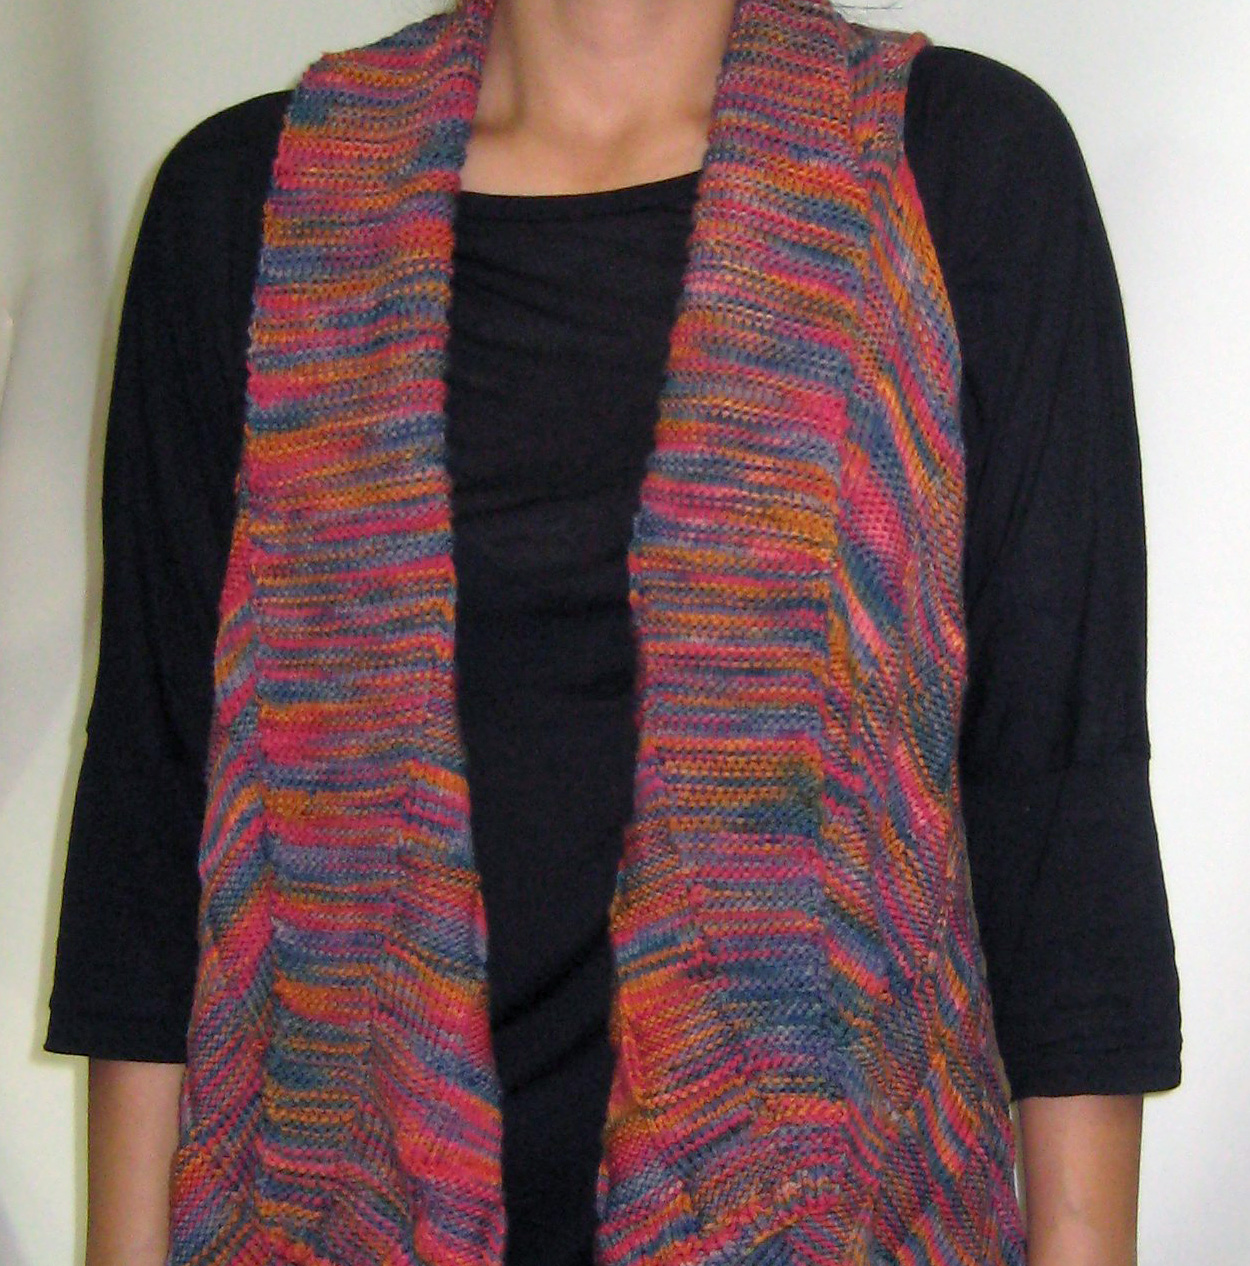 Dyed knit sweater vest by Barbara Foley